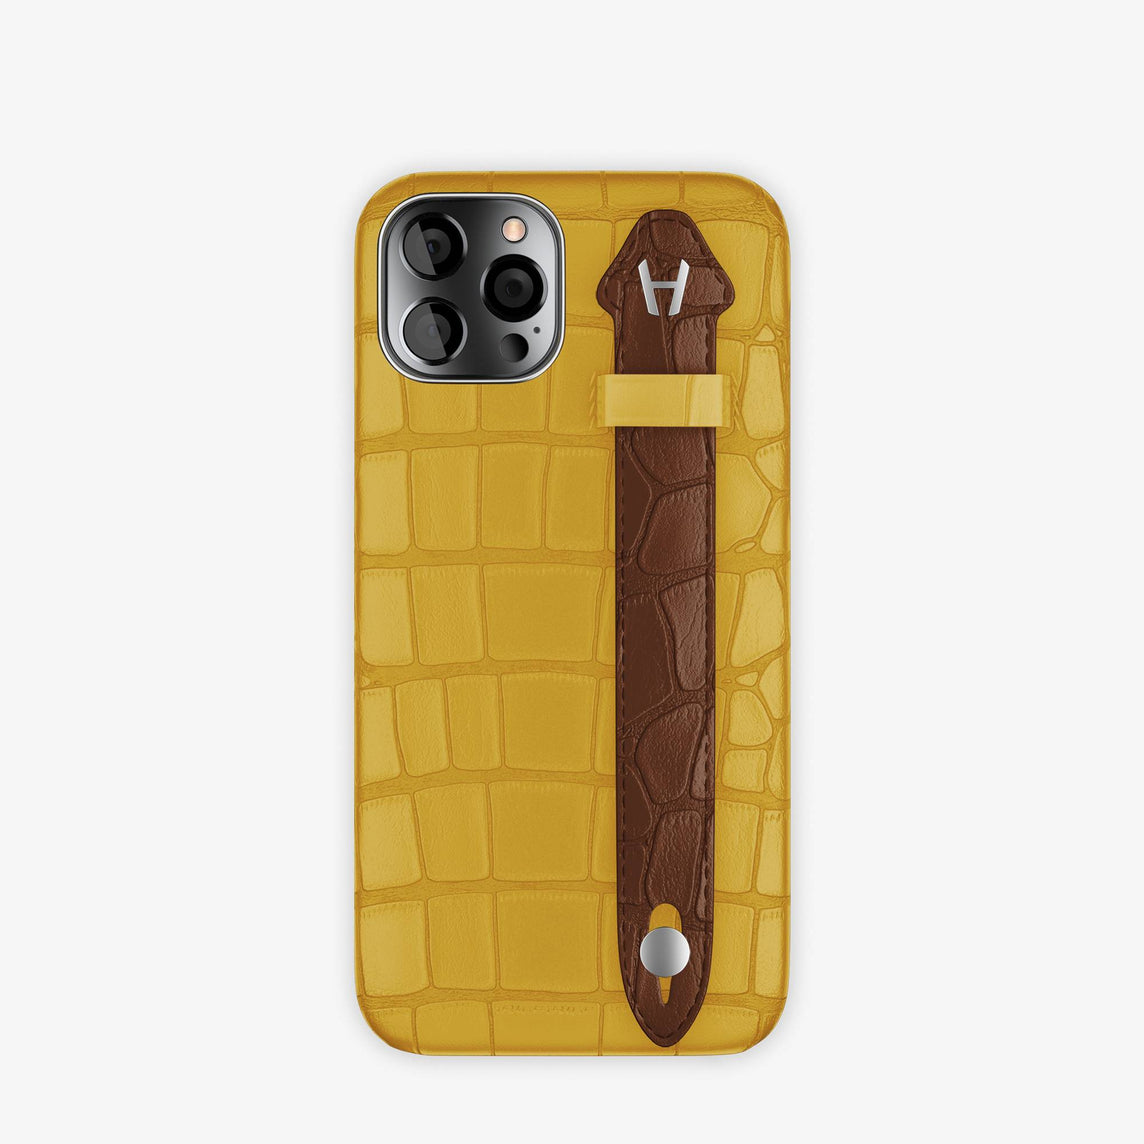 Alligator Side Finger Case iPhone 12 & iPhone 12 Pro | Yellow/Brown Chocolat -Stainless Steel